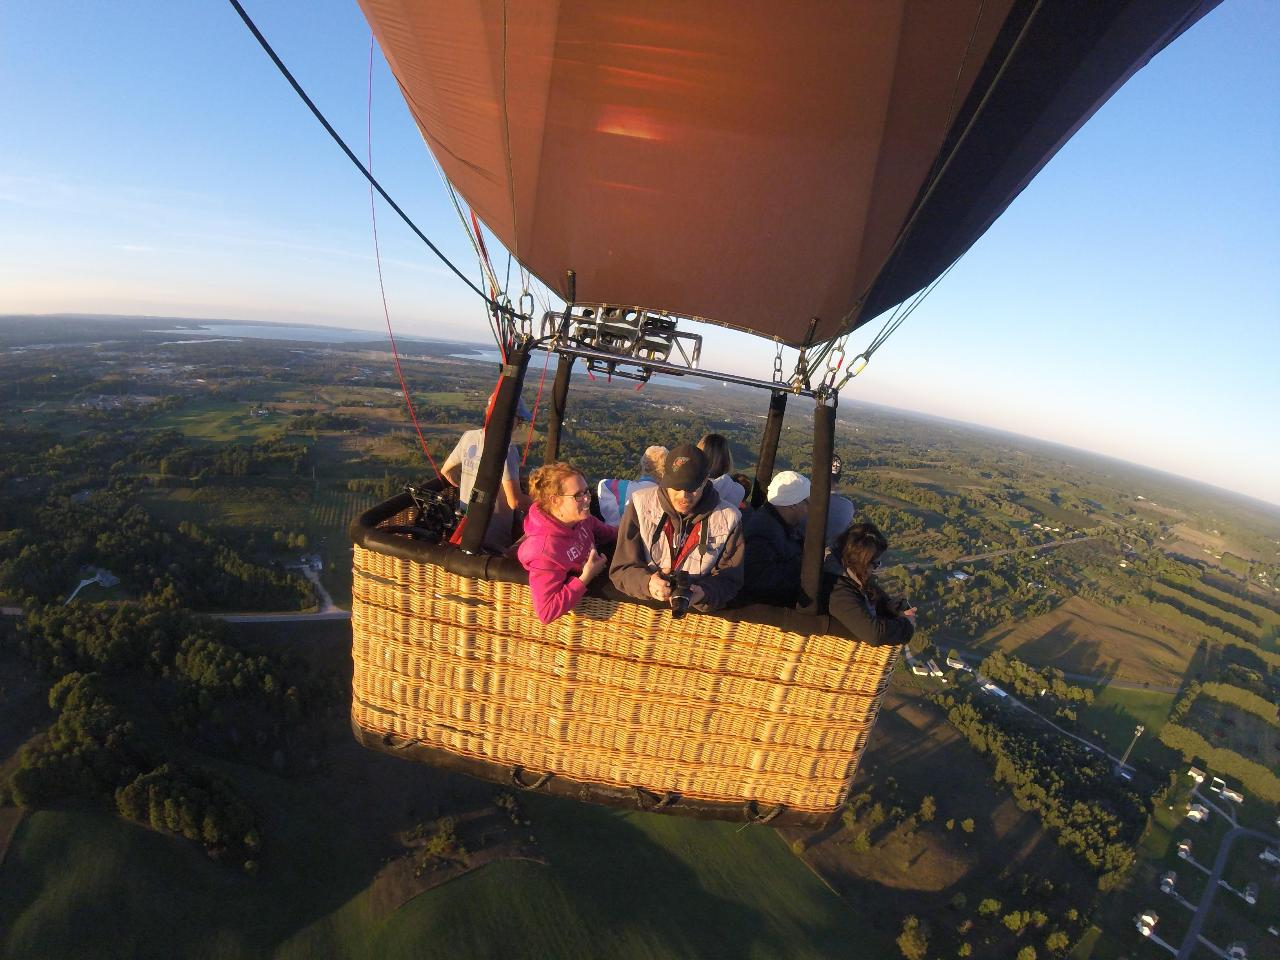 Weekday Private Flight / Large Balloon in Traverse City